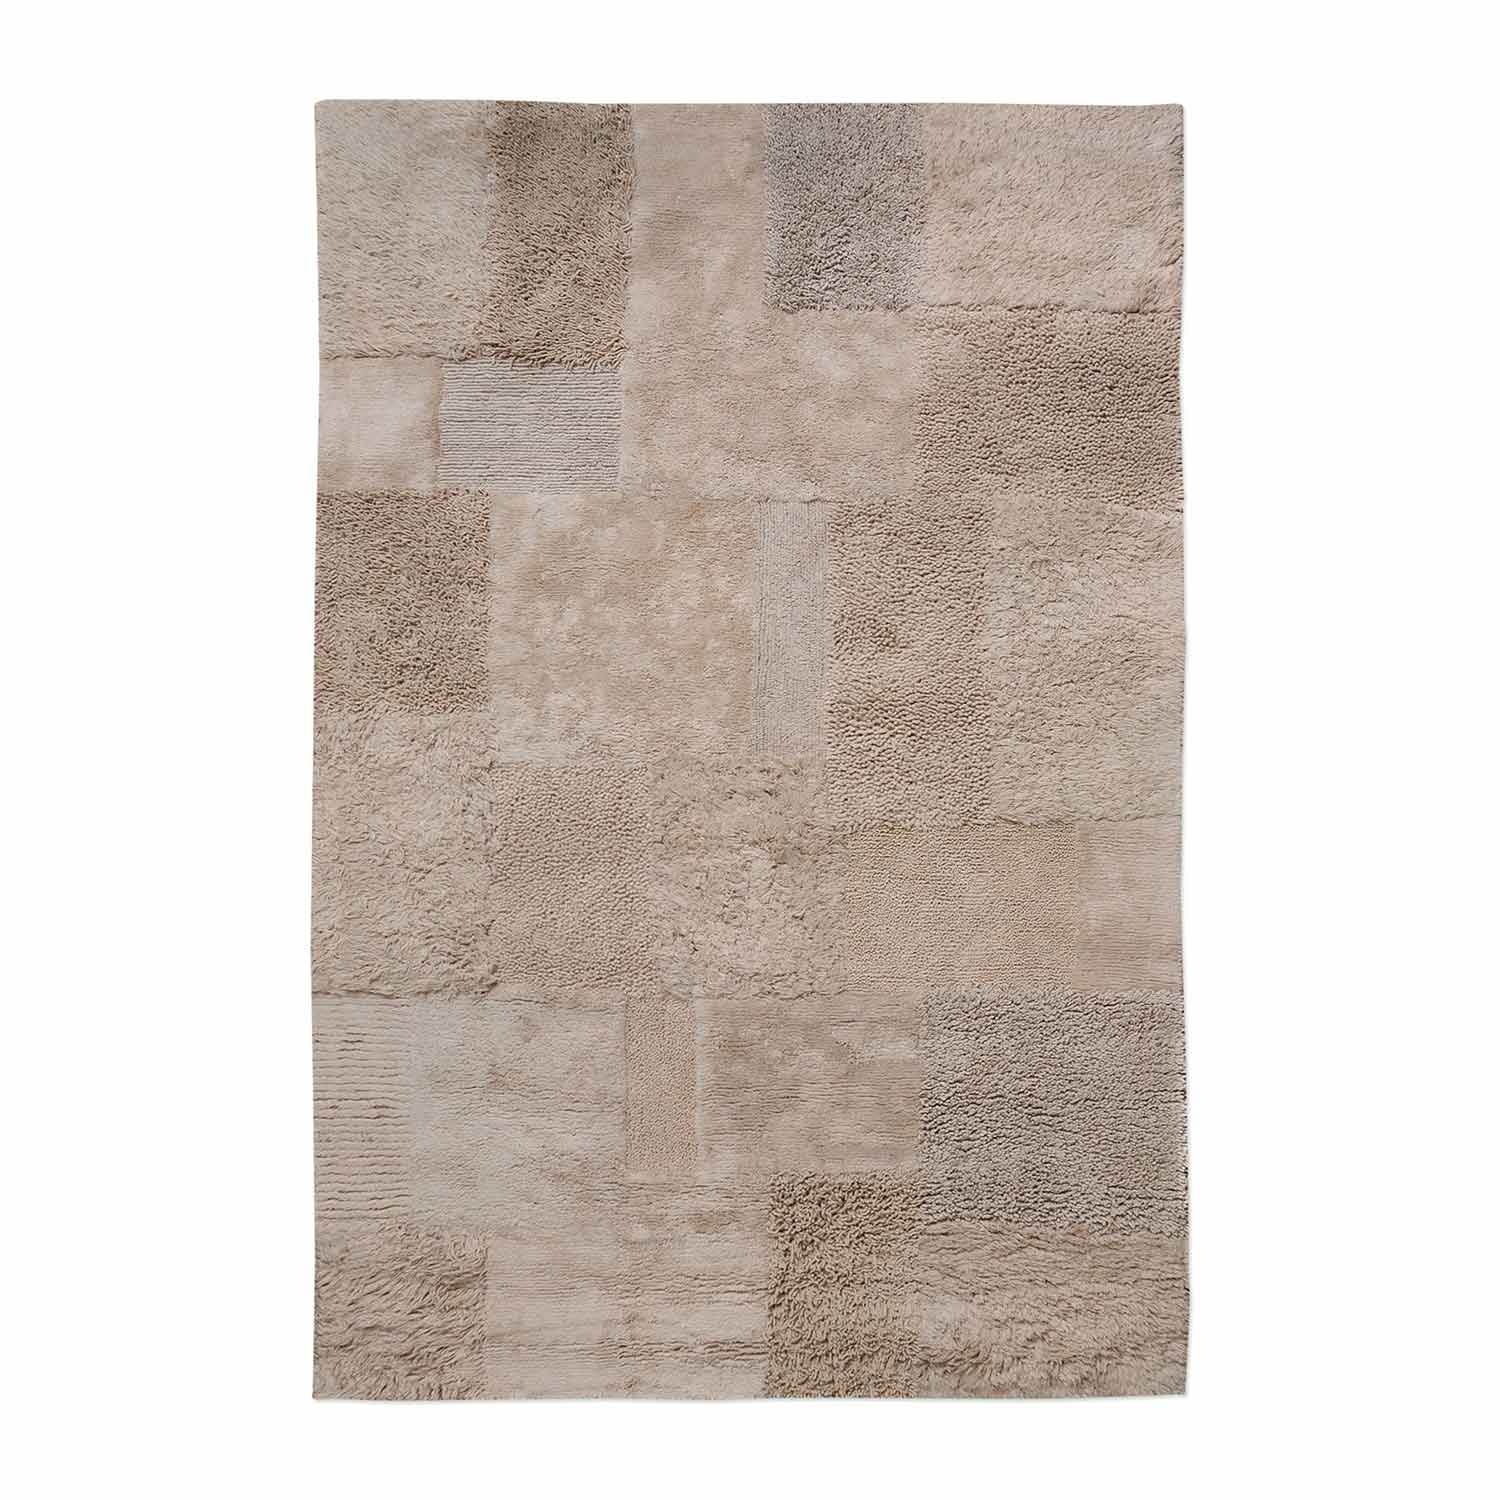 Uttermost Nevada 8 x 10 Rug - Dark Beige